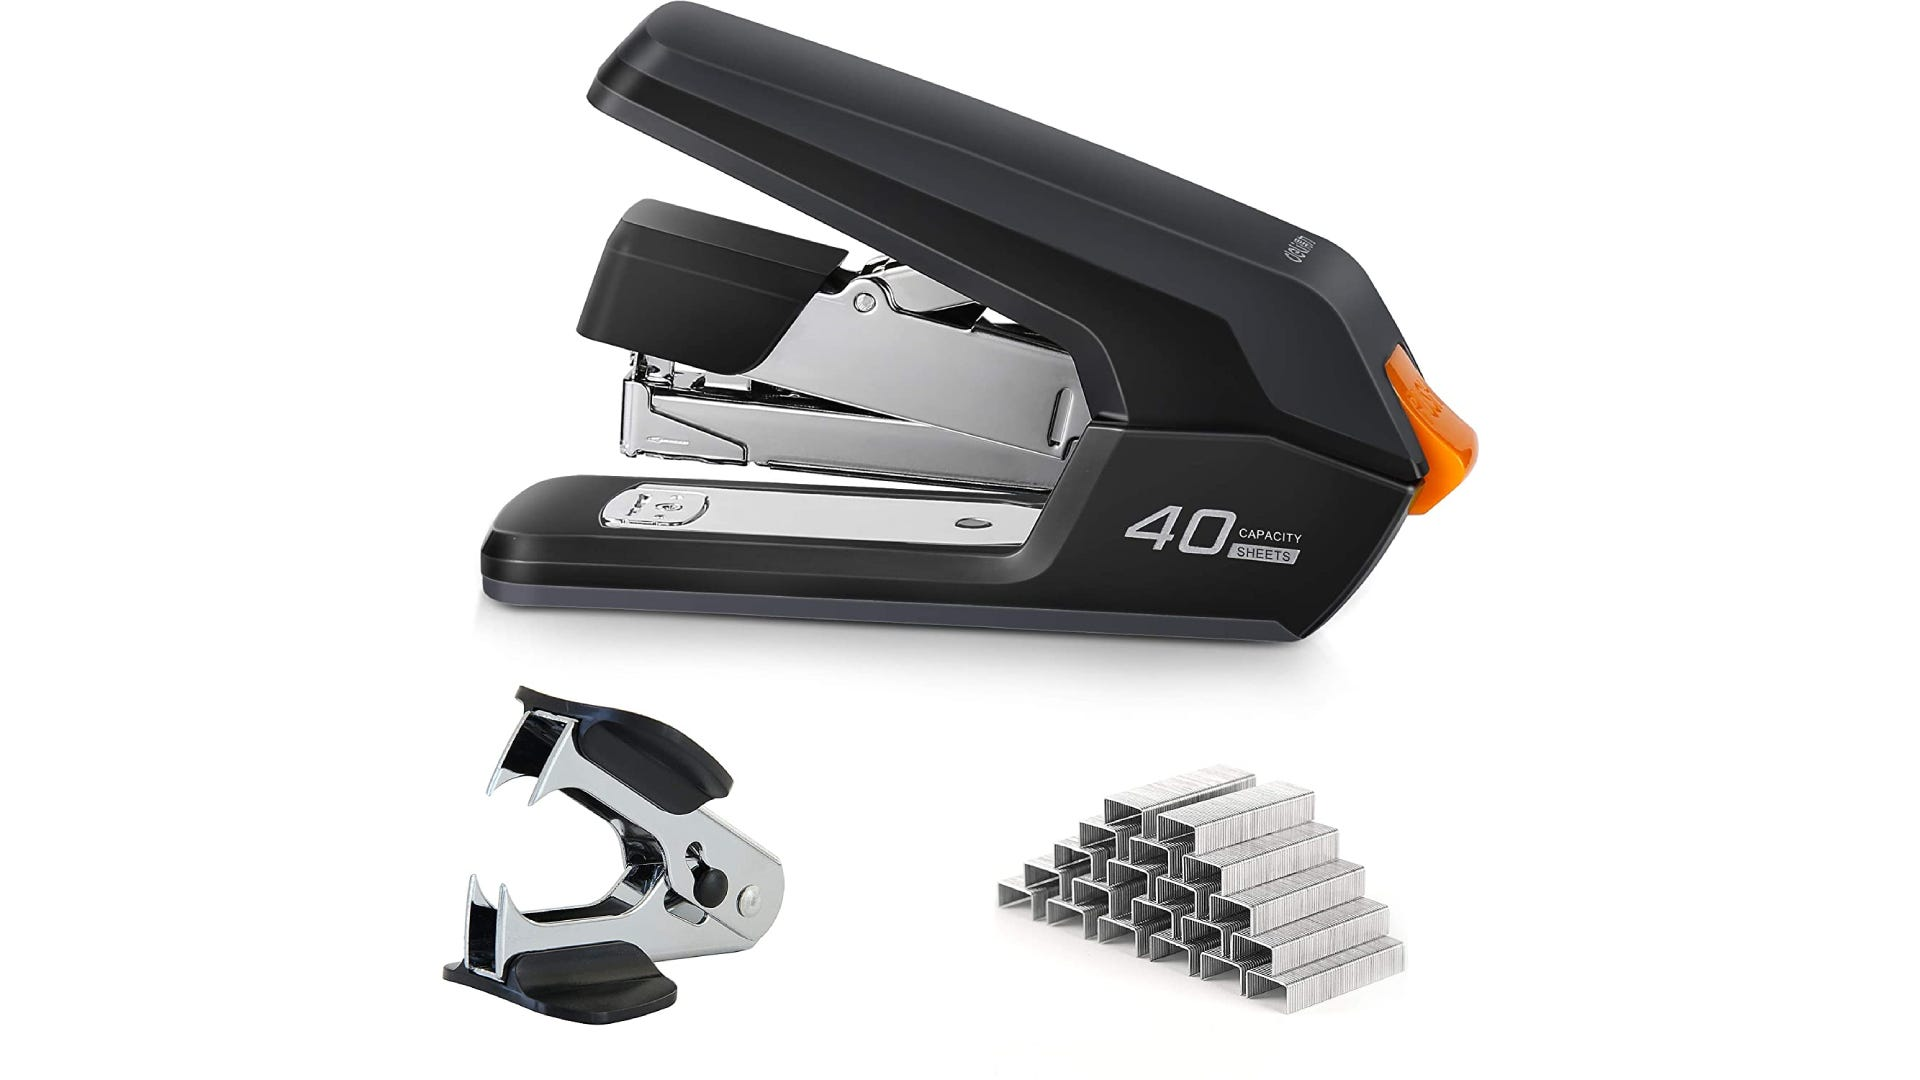 a black thick stapler with staples and a staple remover